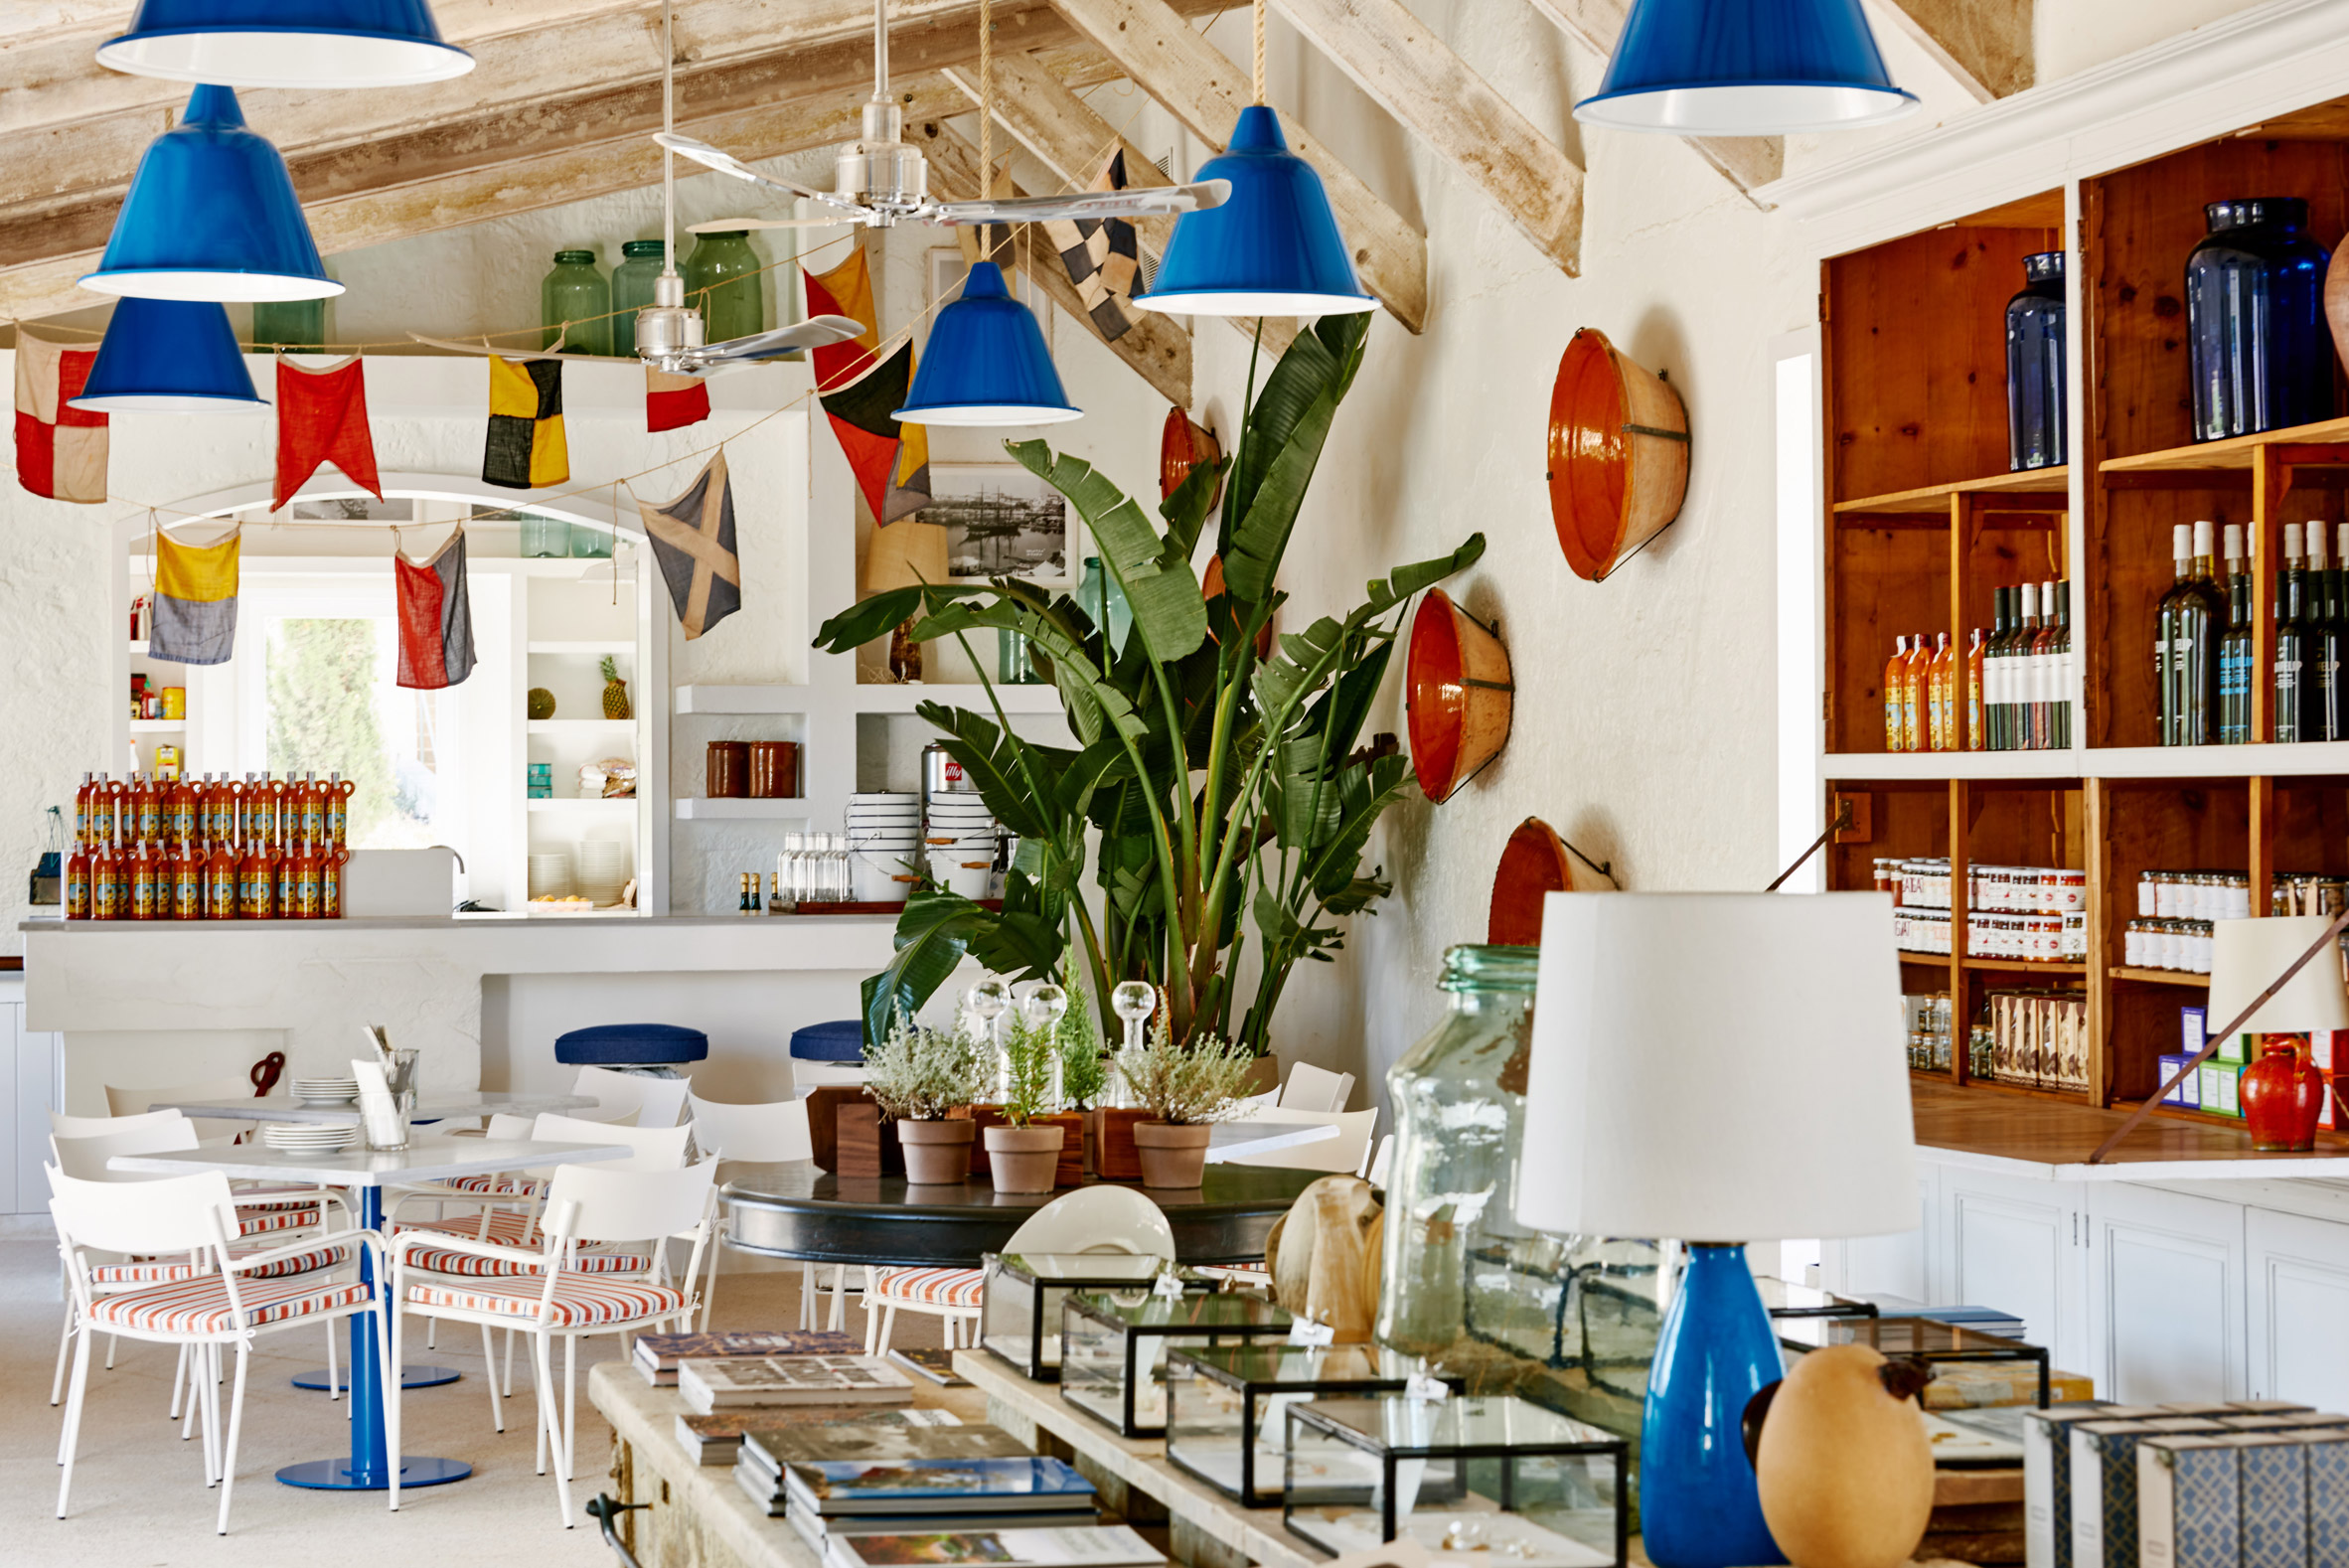 Hauser & Wirth Menorca has a colourful shop and canteen